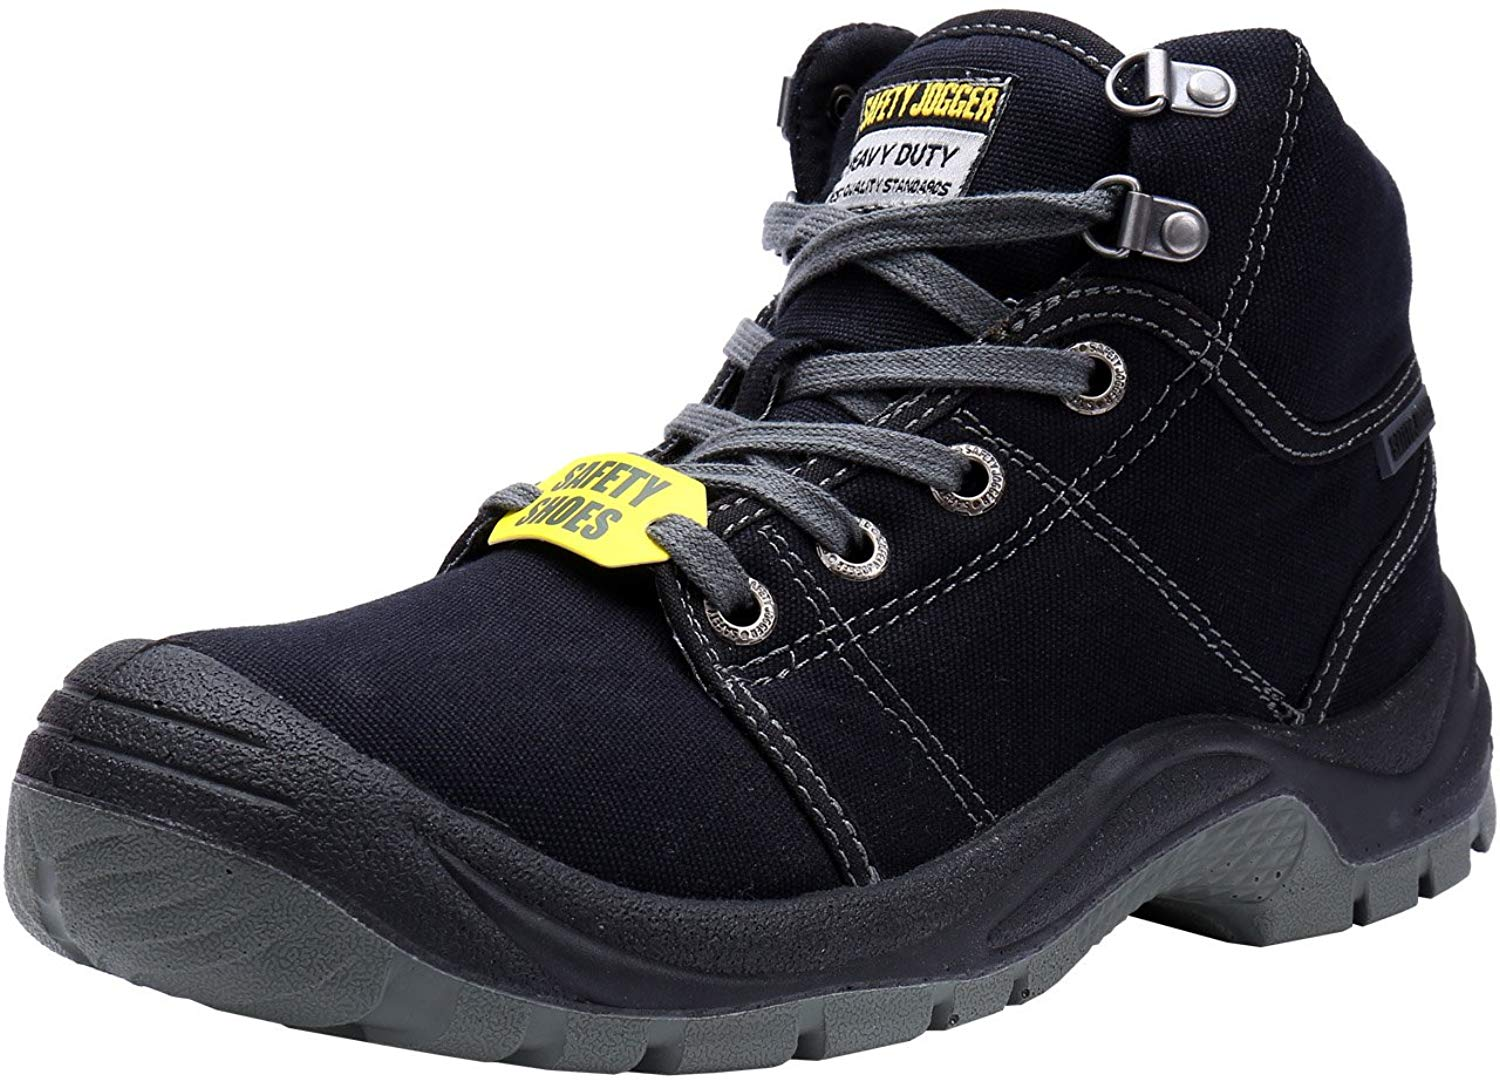 e8502f0819d Cheap S1 Strong Safety Boots, find S1 Strong Safety Boots deals on ...